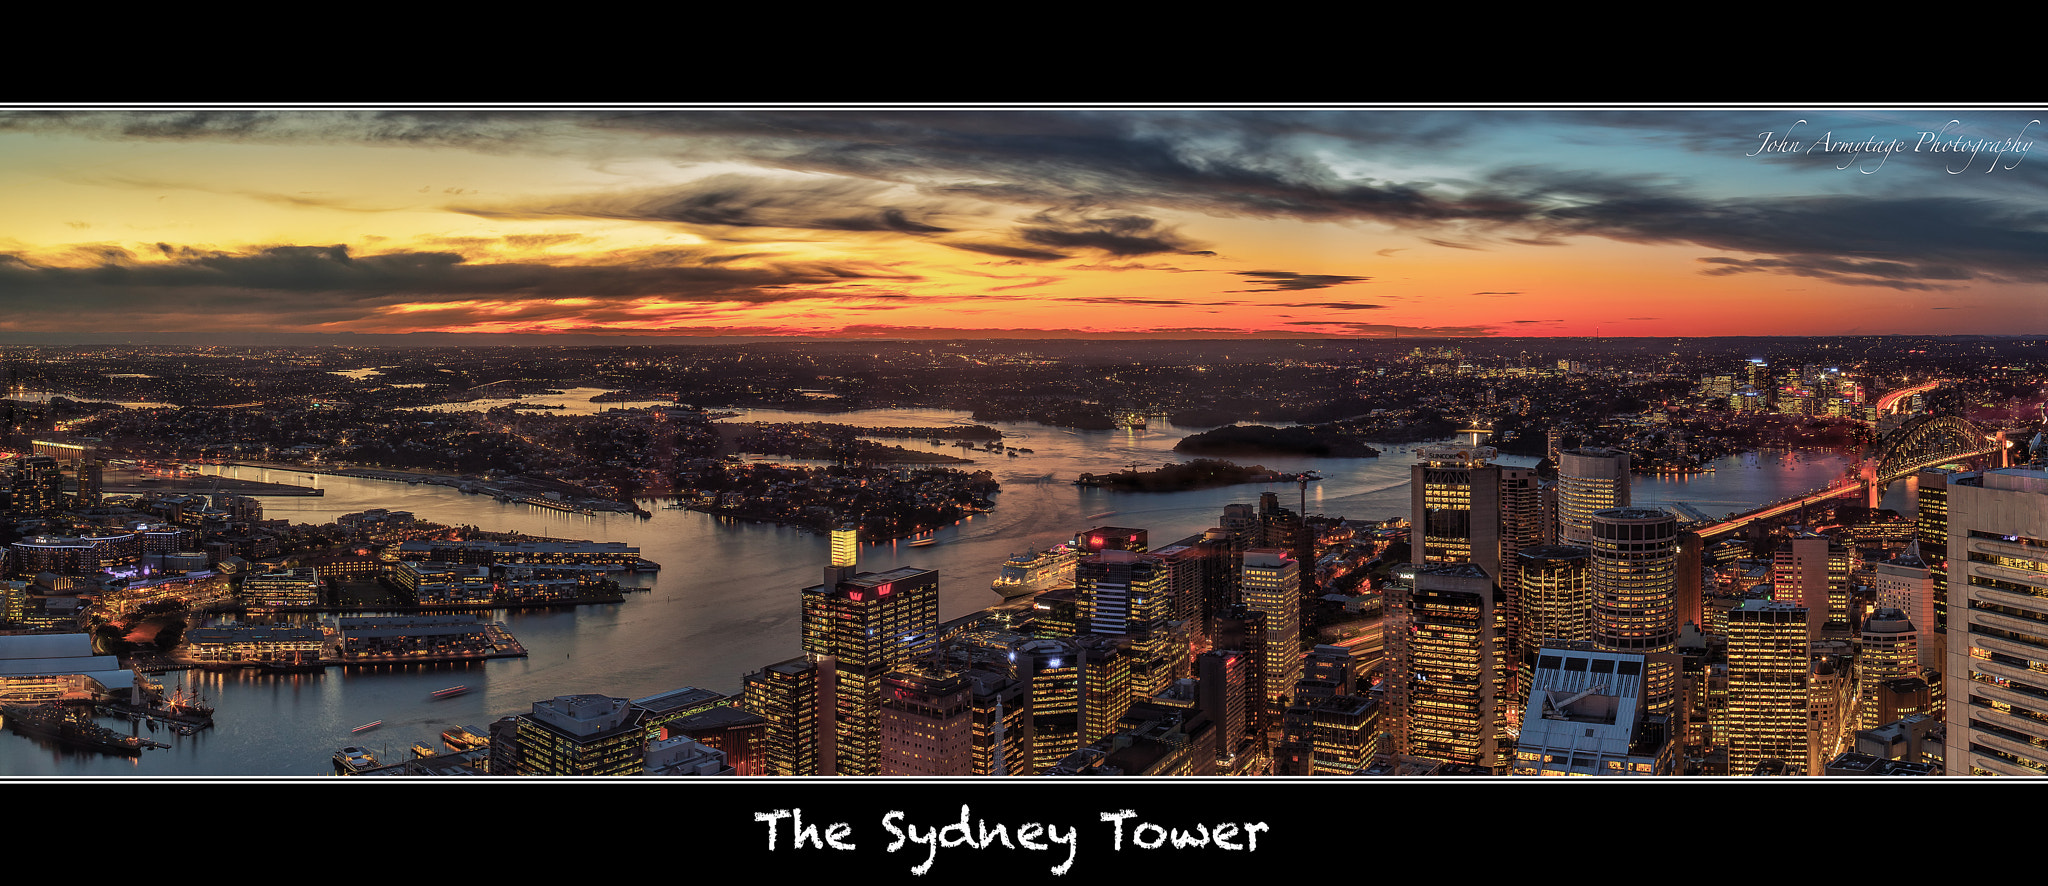 Photograph The Sydney Tower - View by John Armytage on 500px